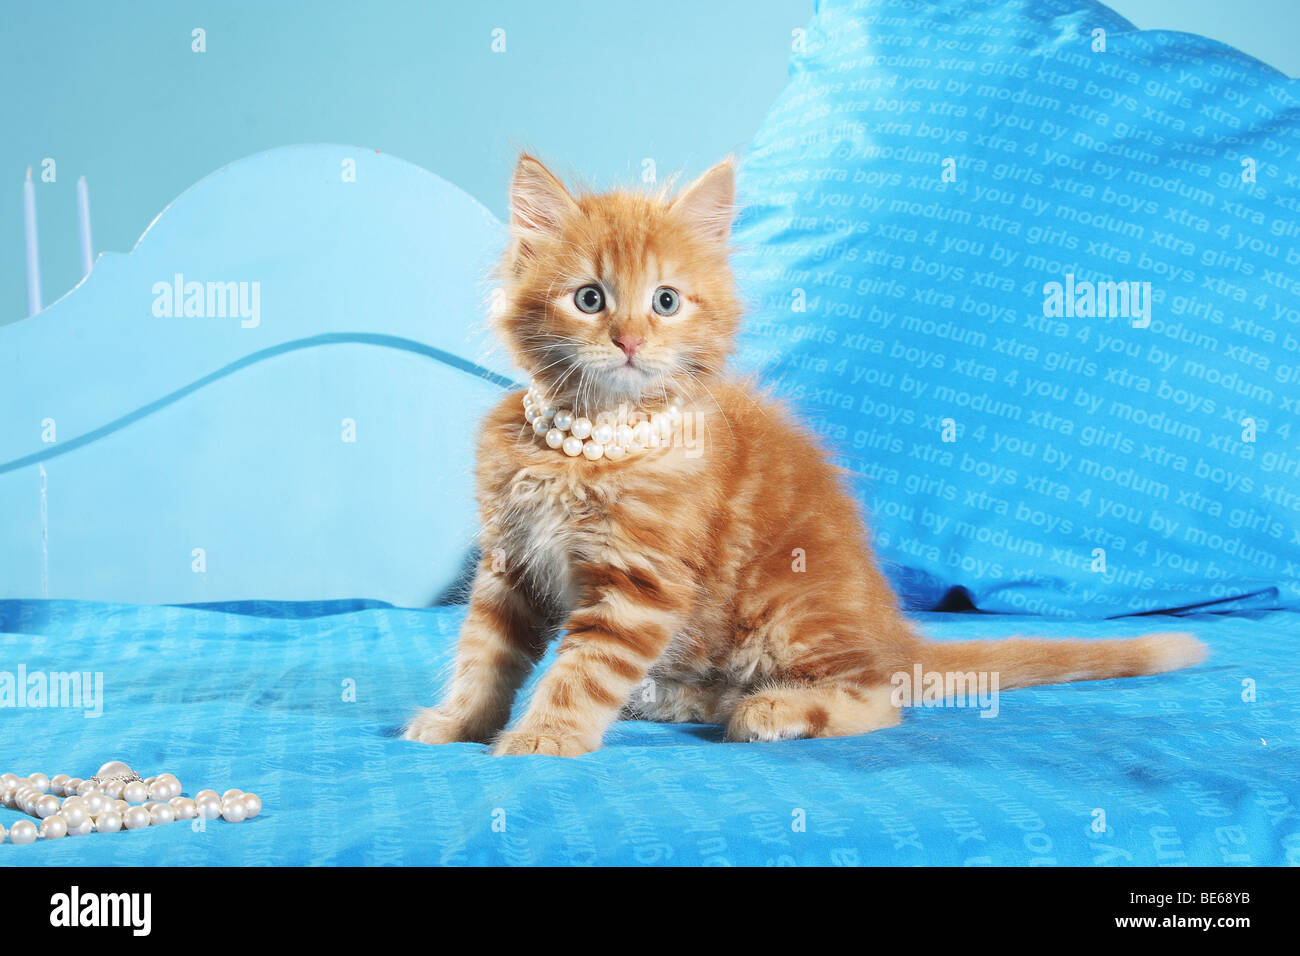 Siberian cat - kitten with pearl necklace on bed - Stock Image